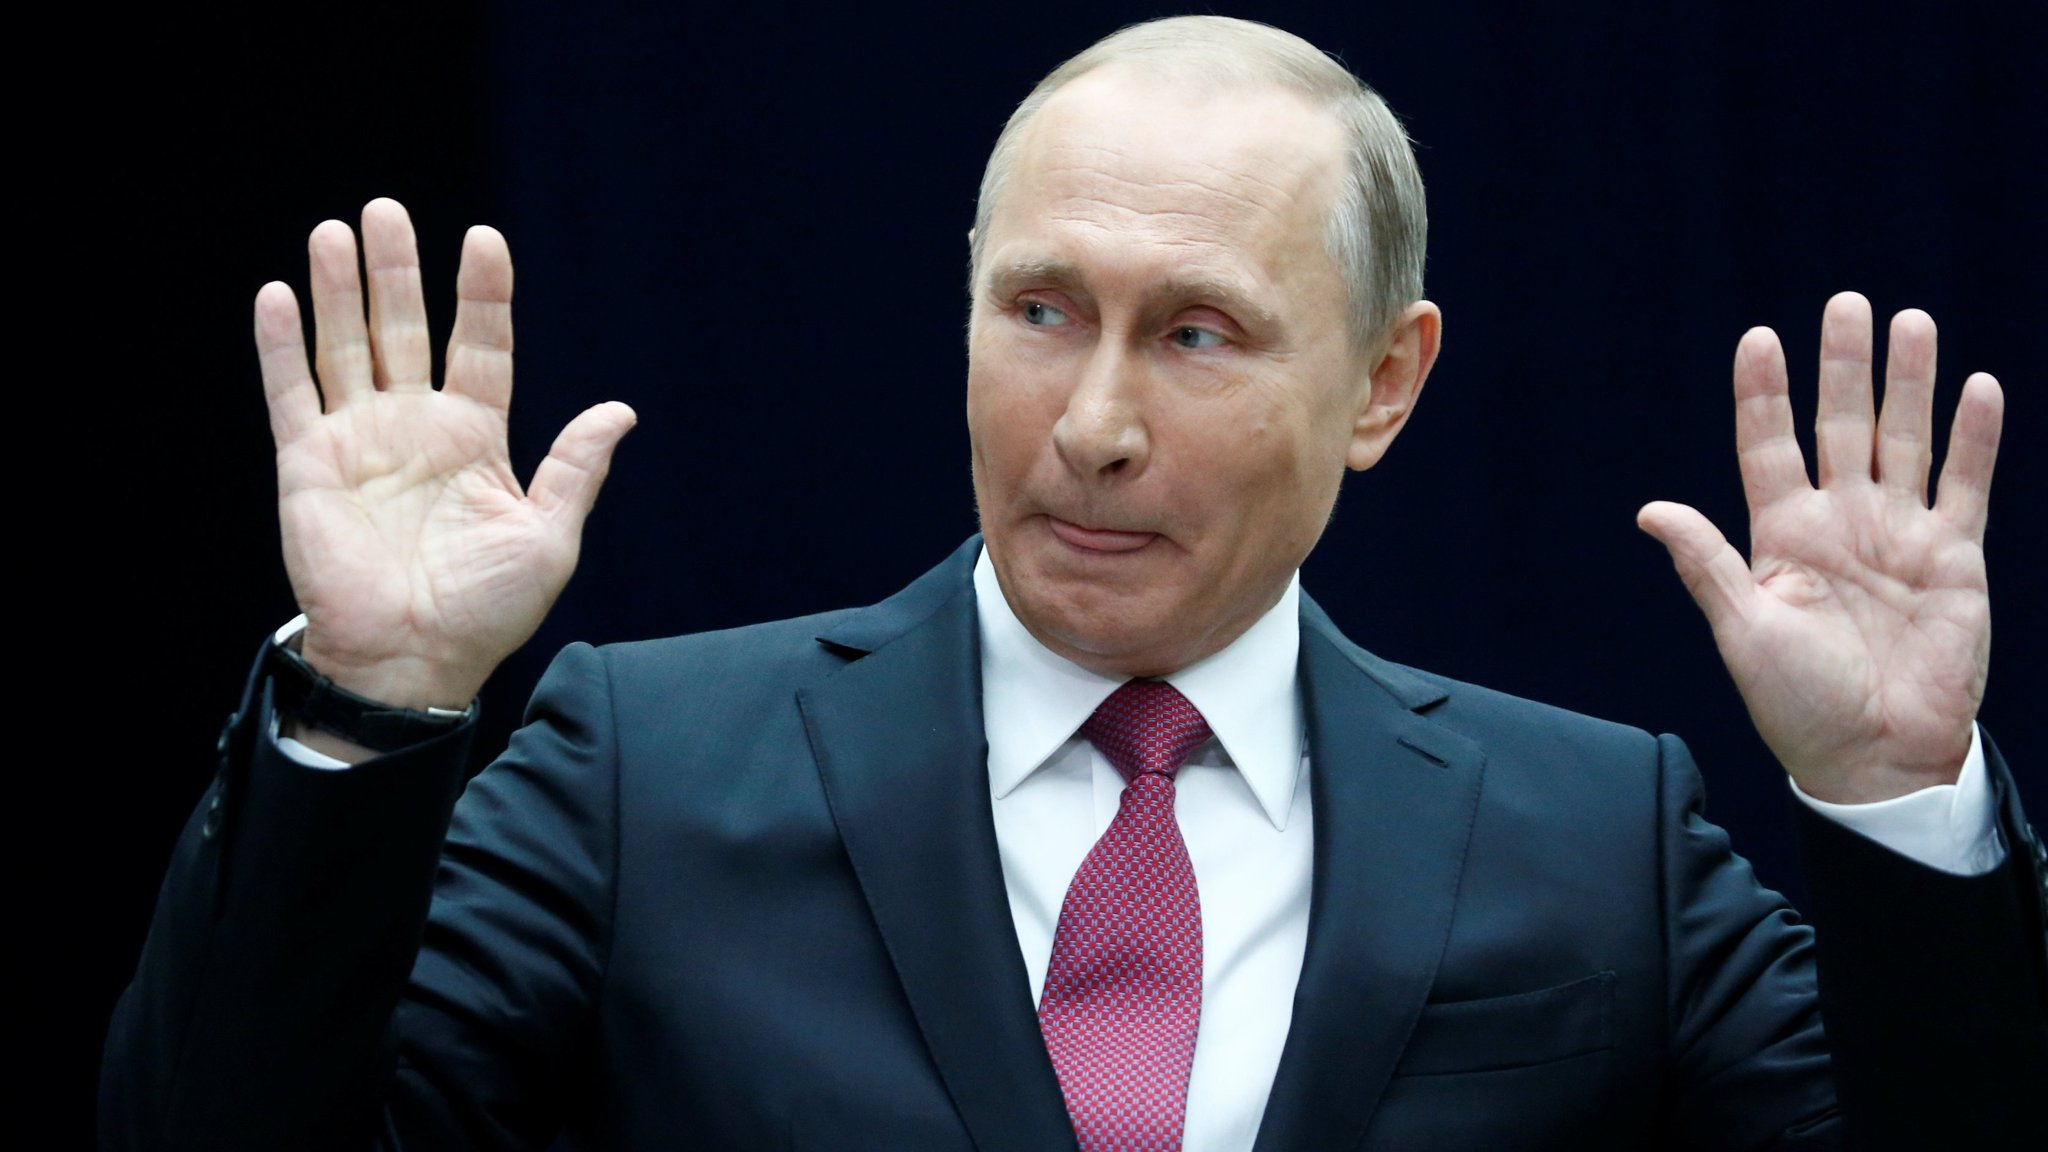 Putin S Approval Ratings Slip But Public Confidence Remains Strong Financial Times